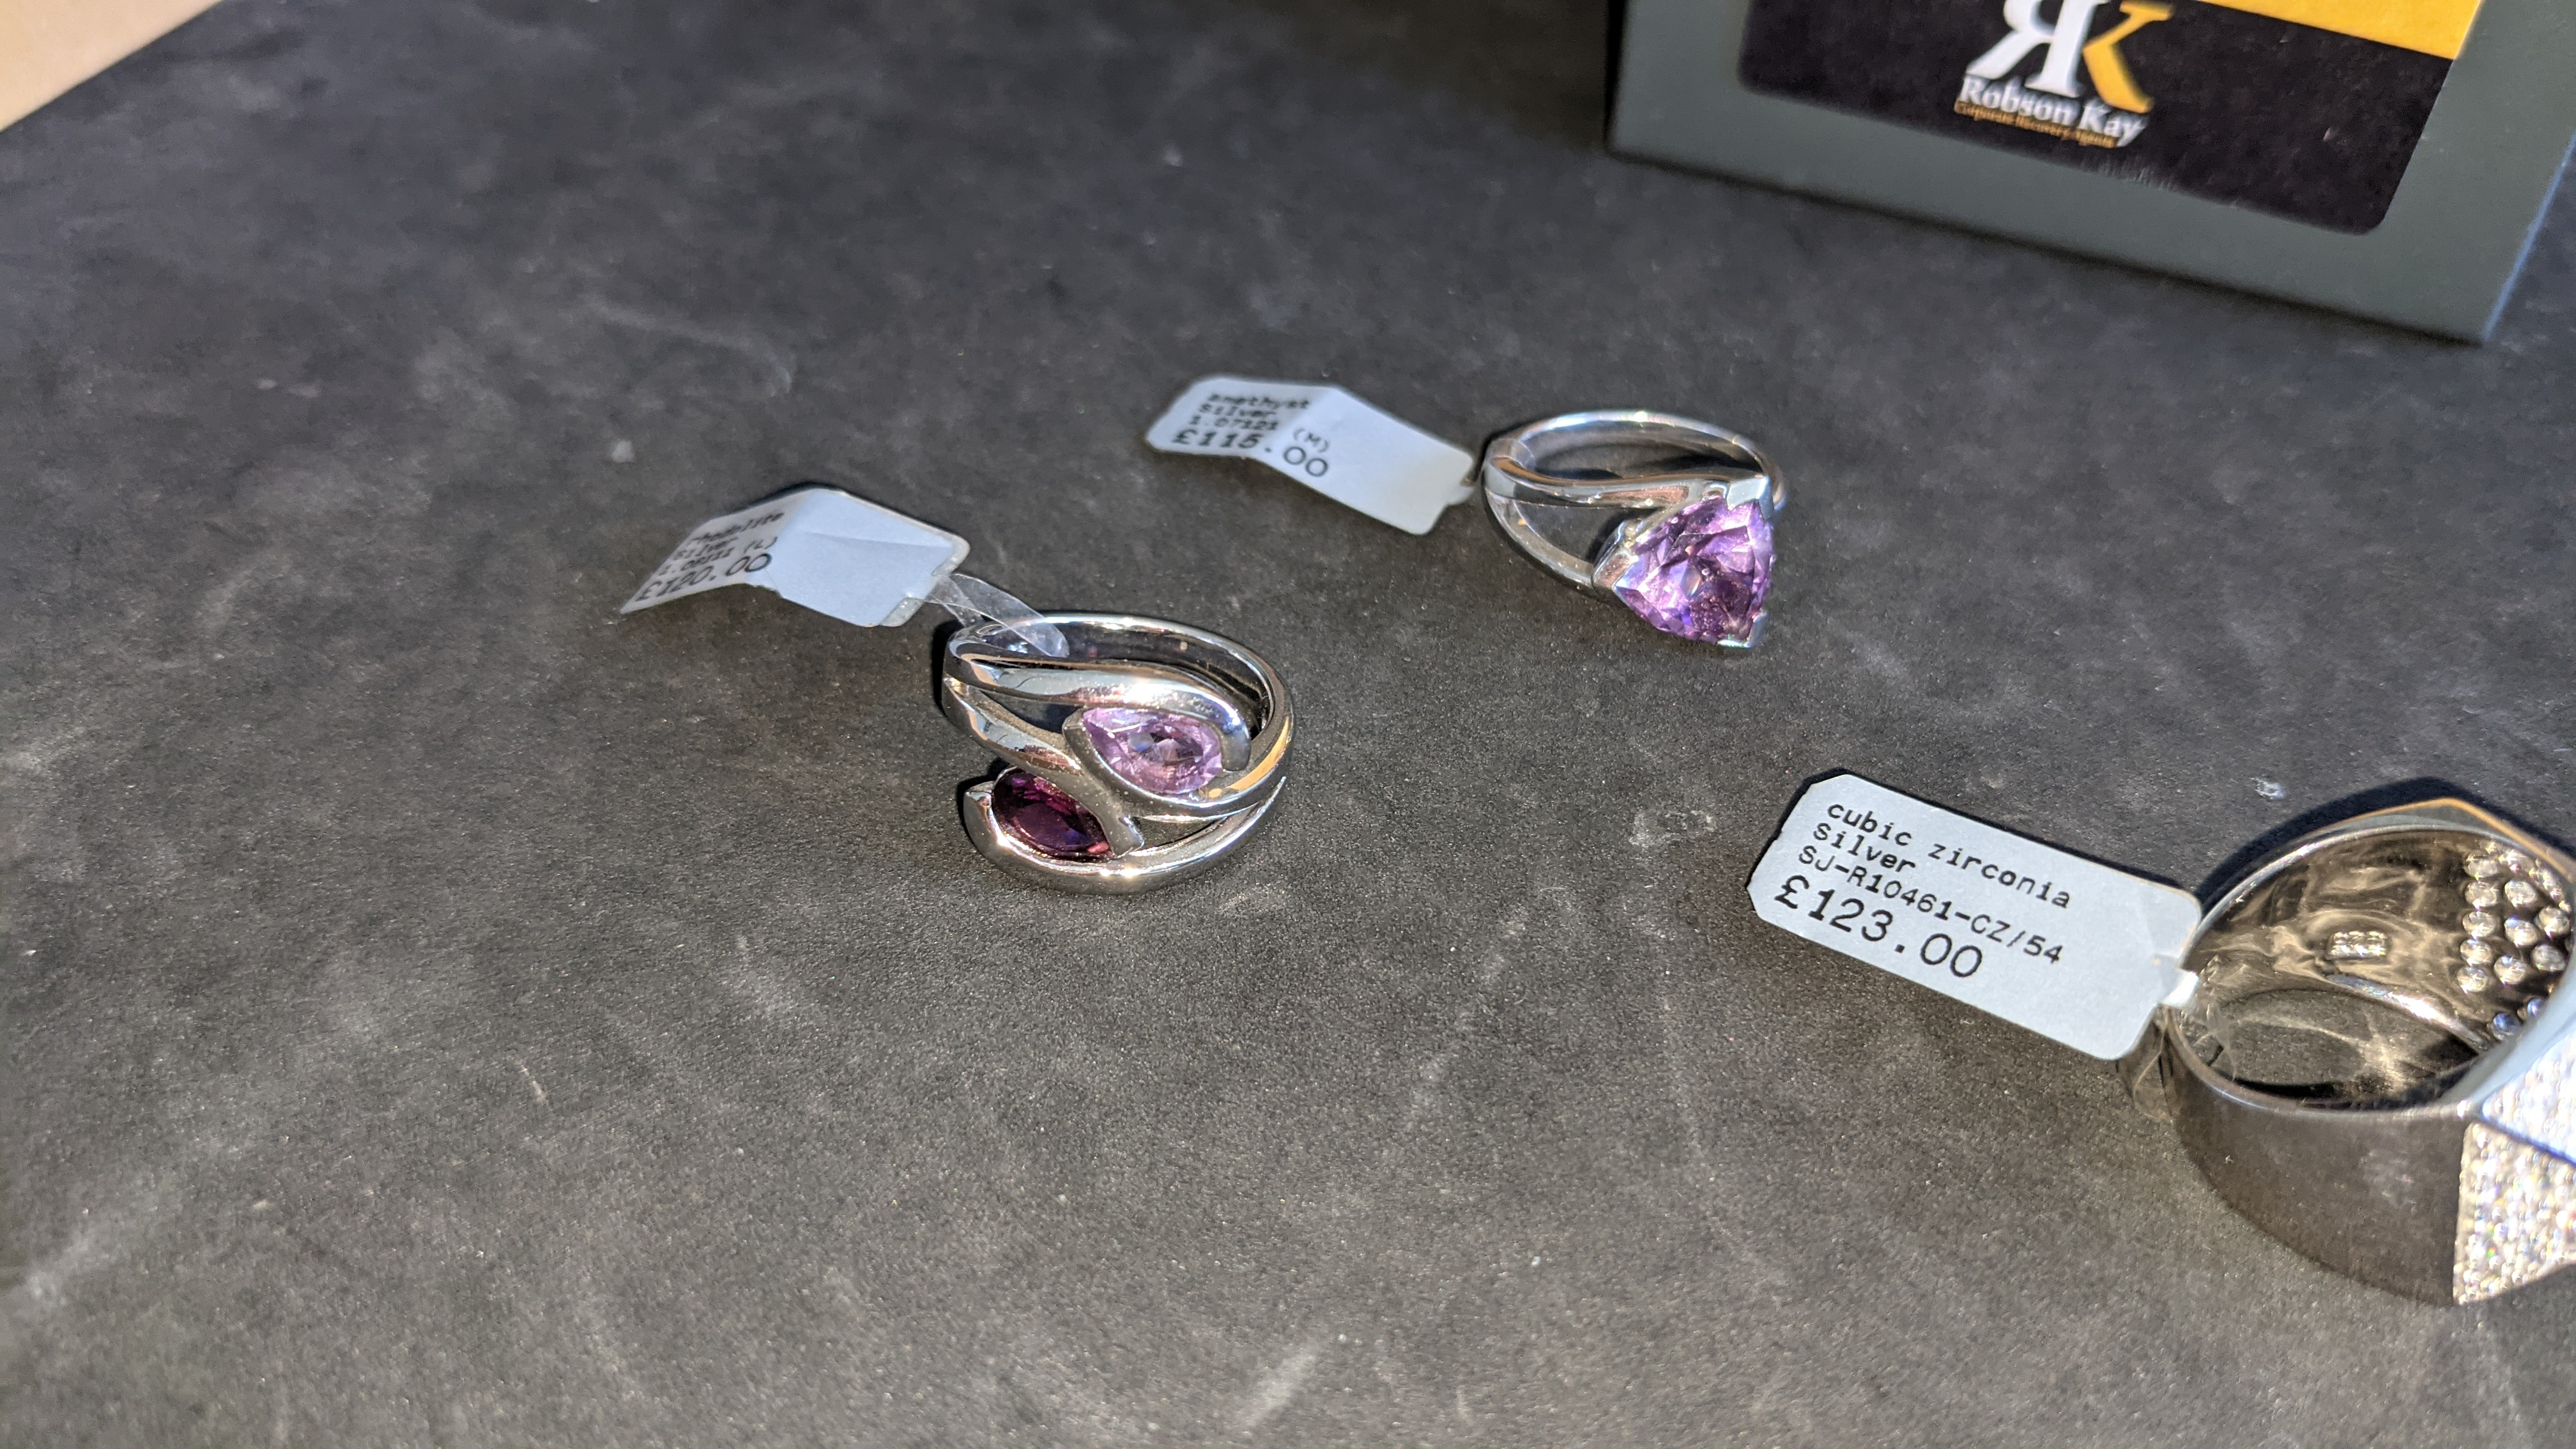 3 off assorted silver rings, each with a coloured stone. RRP from £115 - £123. Total RRP is £358 - Image 5 of 11